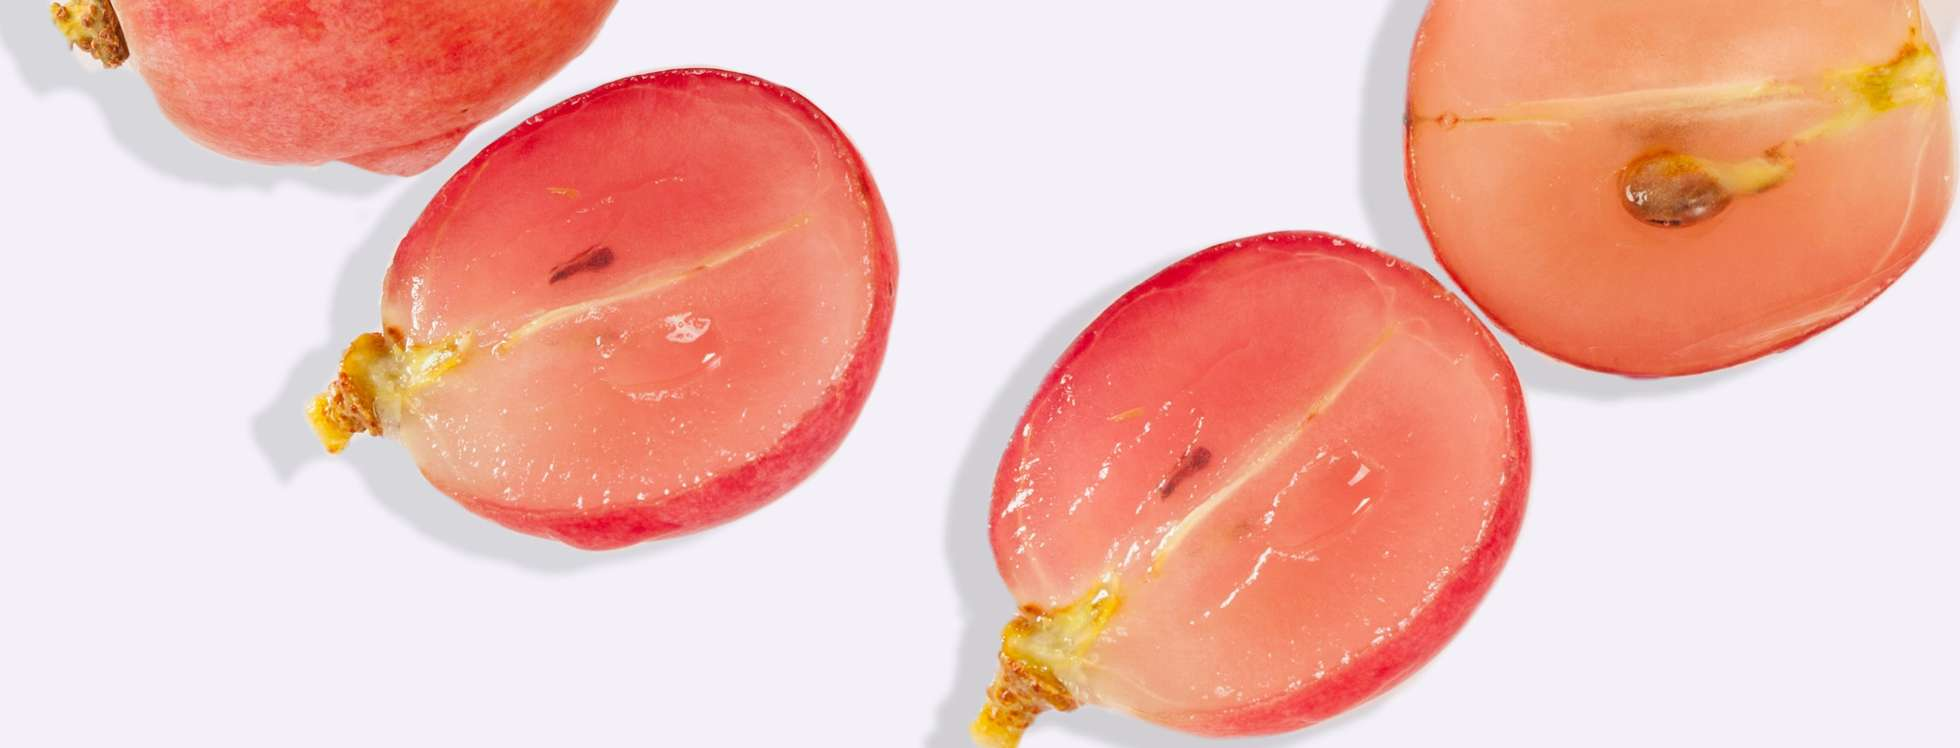 Cross section of pink grape on grey background